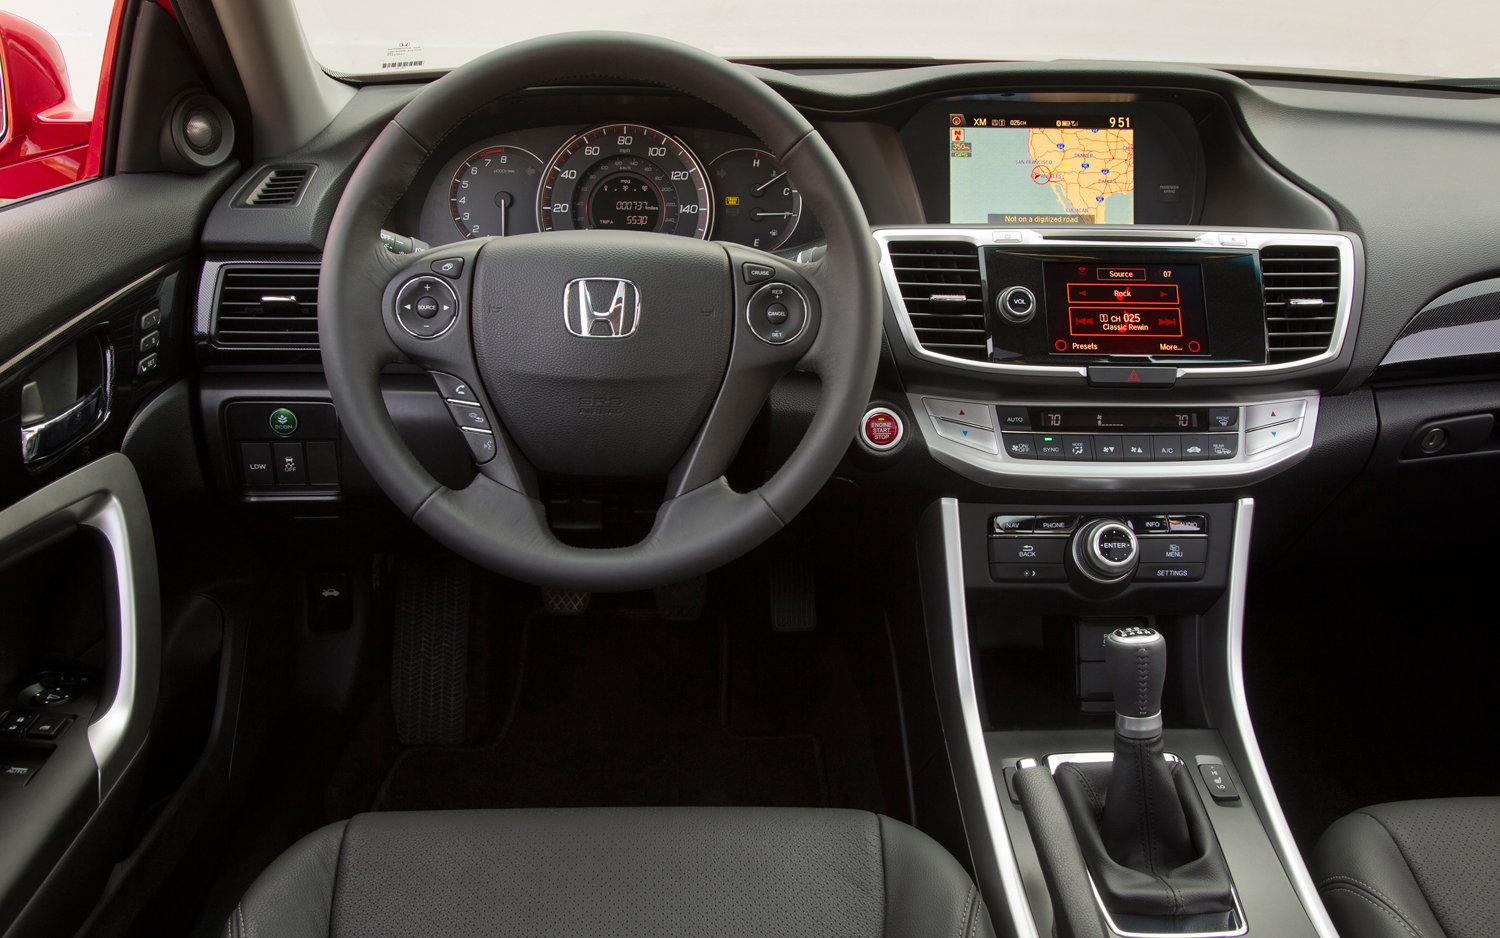 2013 honda accord review for Honda accord used 2013